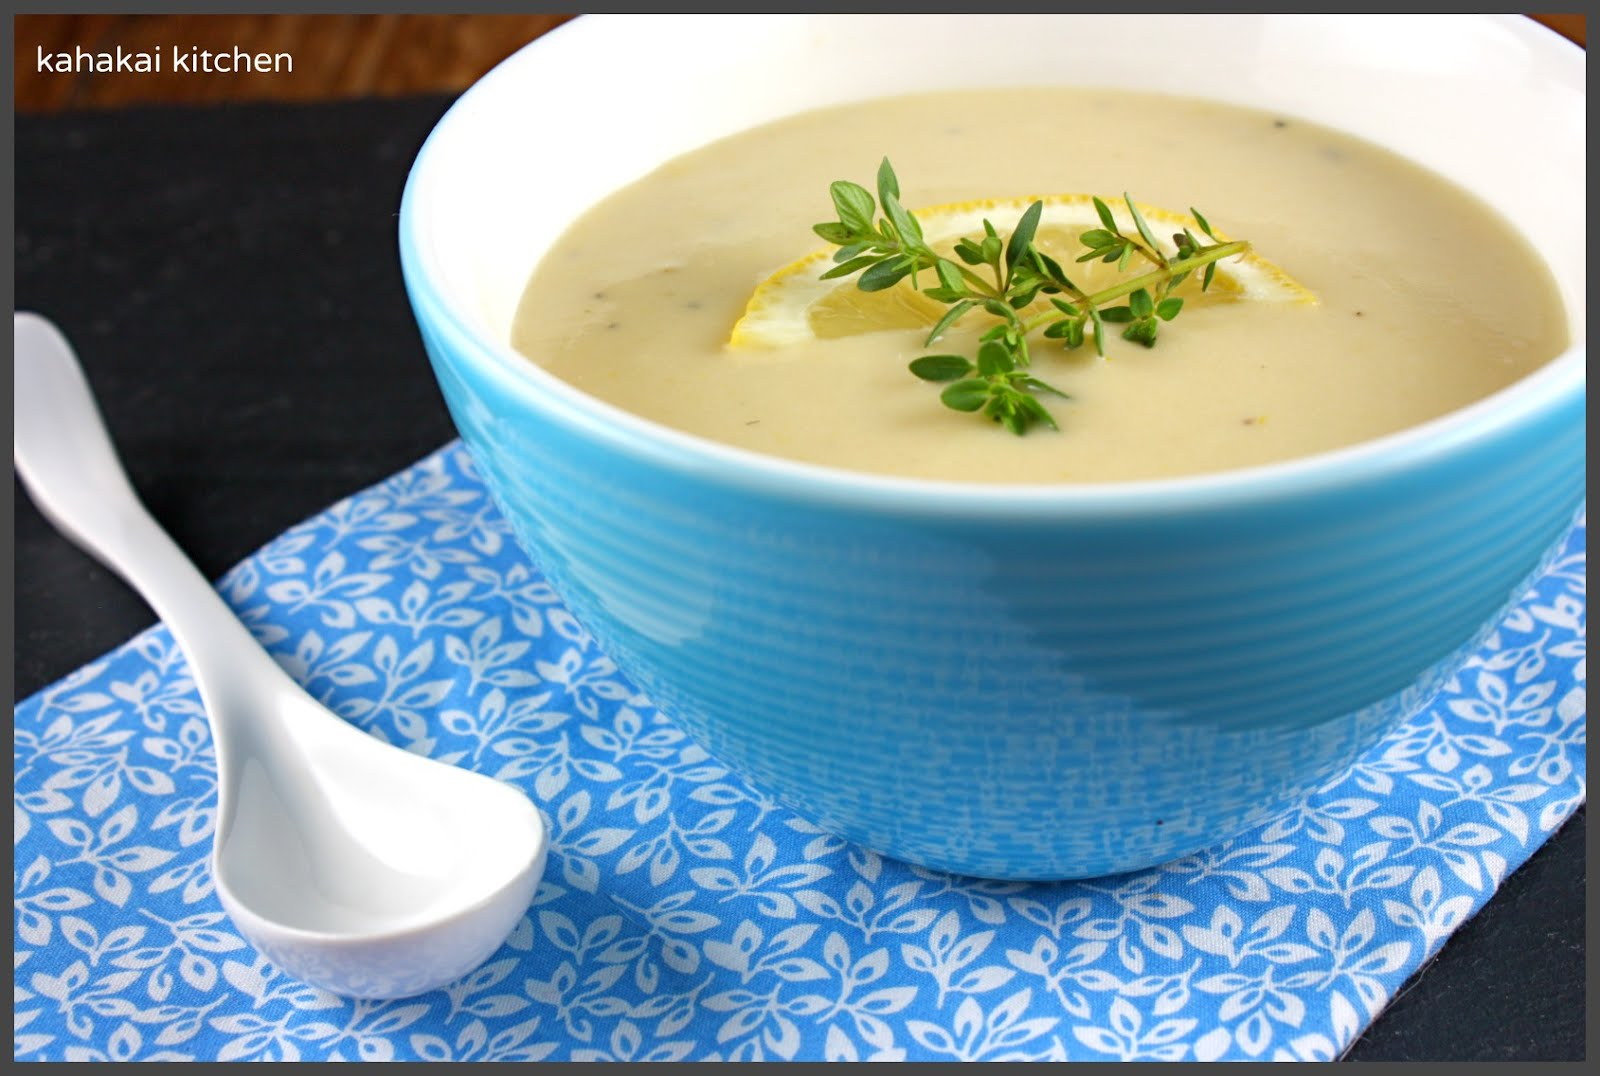 Kahakai Kitchen: Creamy Artichoke-Lemon Soup: Hot or Cold for Souper ...